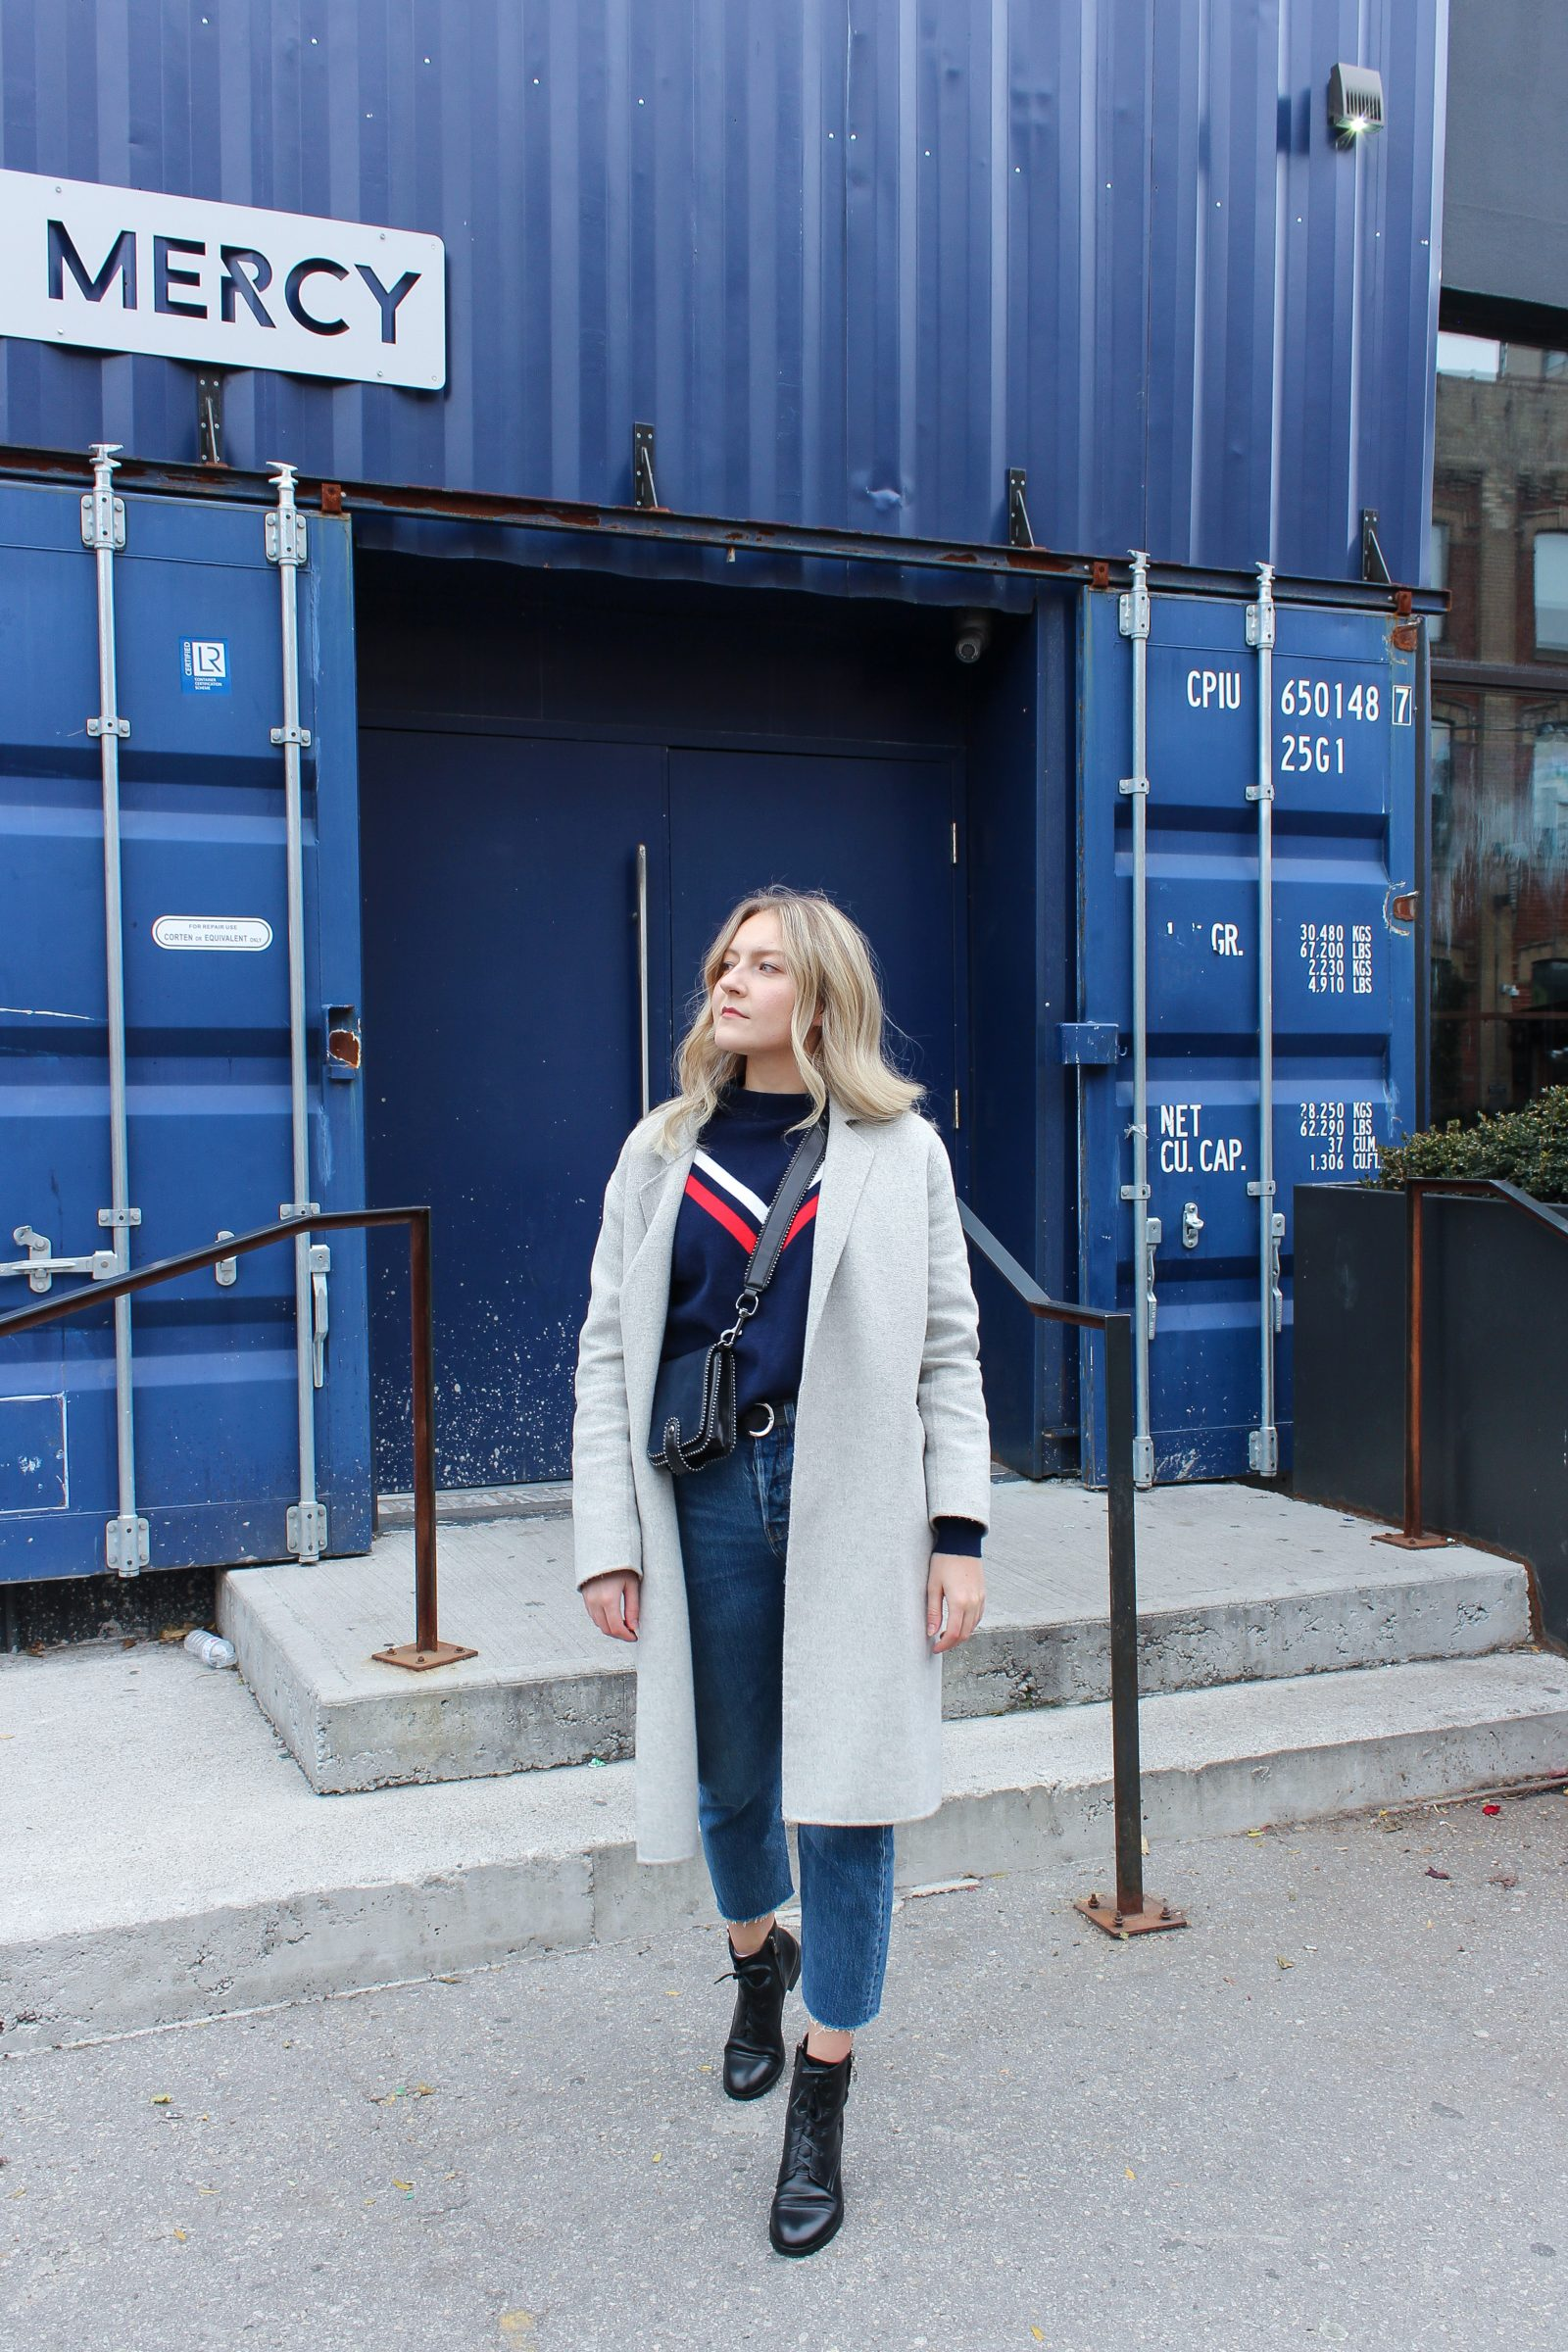 A blonde woman wearing a blue vintage sweater, crossbody bag, oversized grey coat, and black combat boots, in front of a blue shipping container